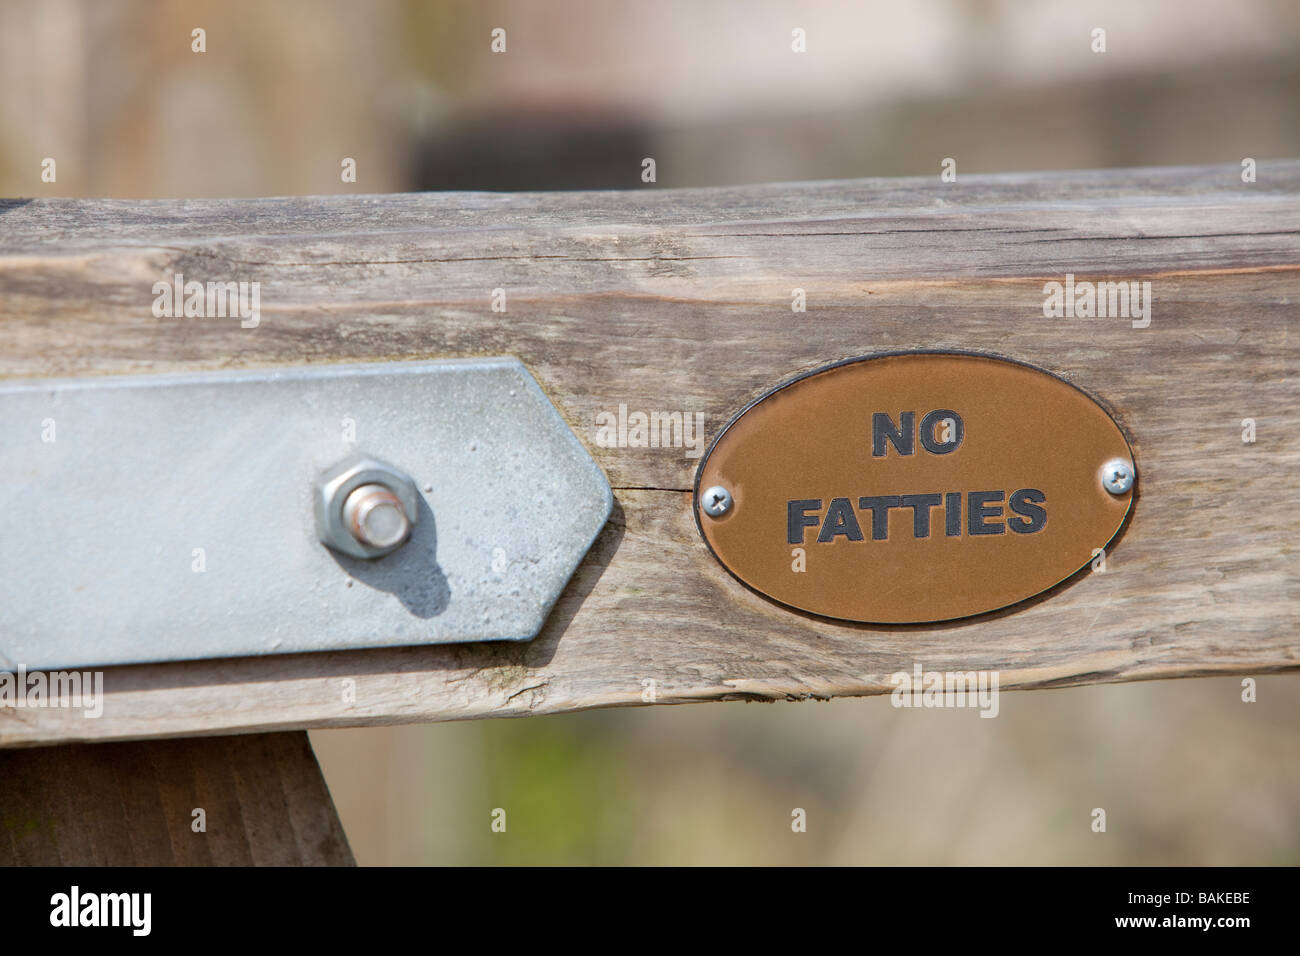 A no fatties sign on a gate on a footpath in Clitheroe Lancashire UK - Stock Image